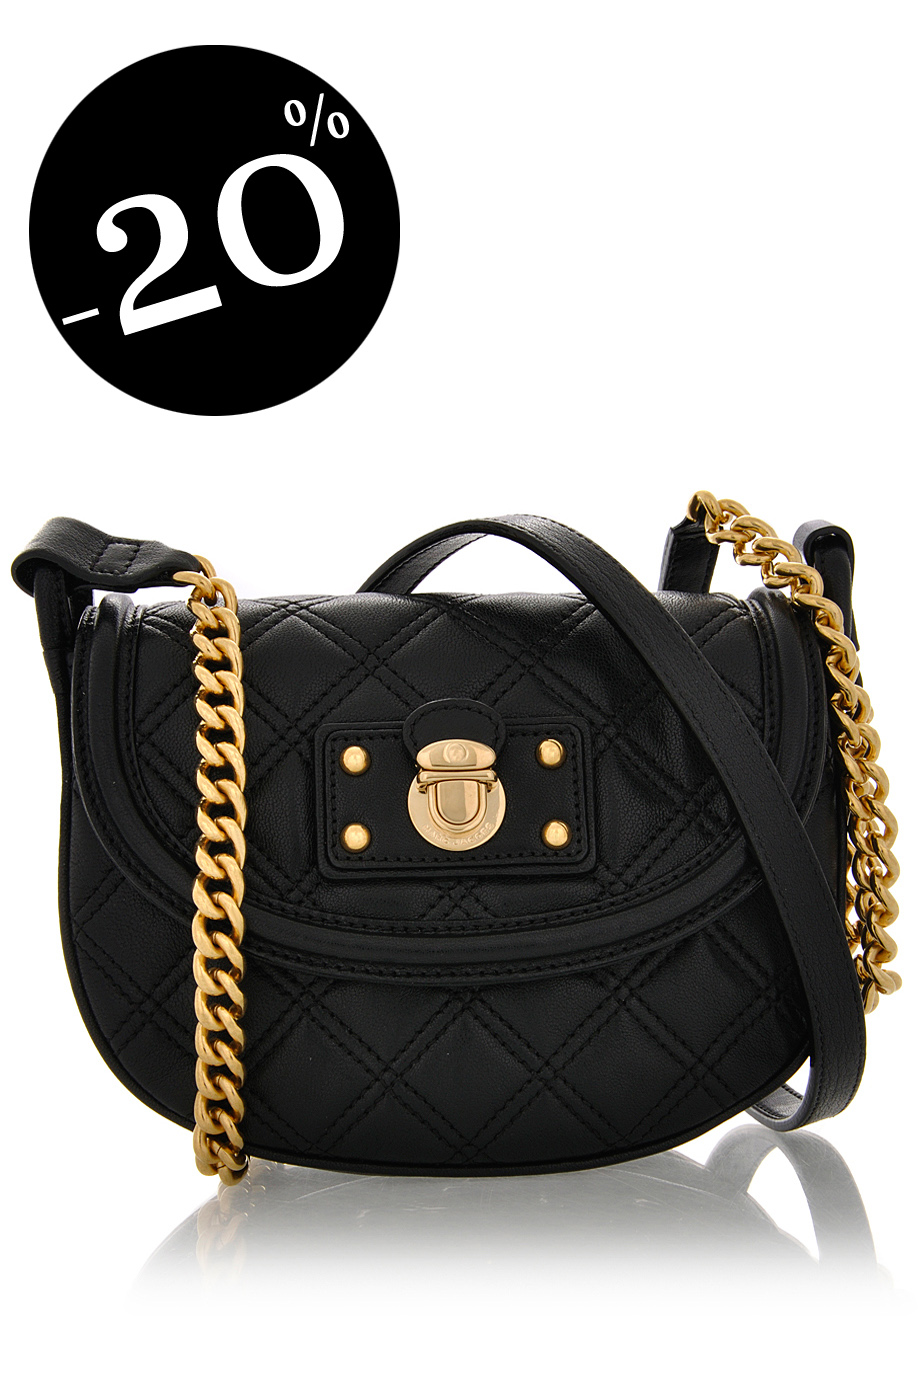 MARC JACOBS NOHO Quilting Black Bag